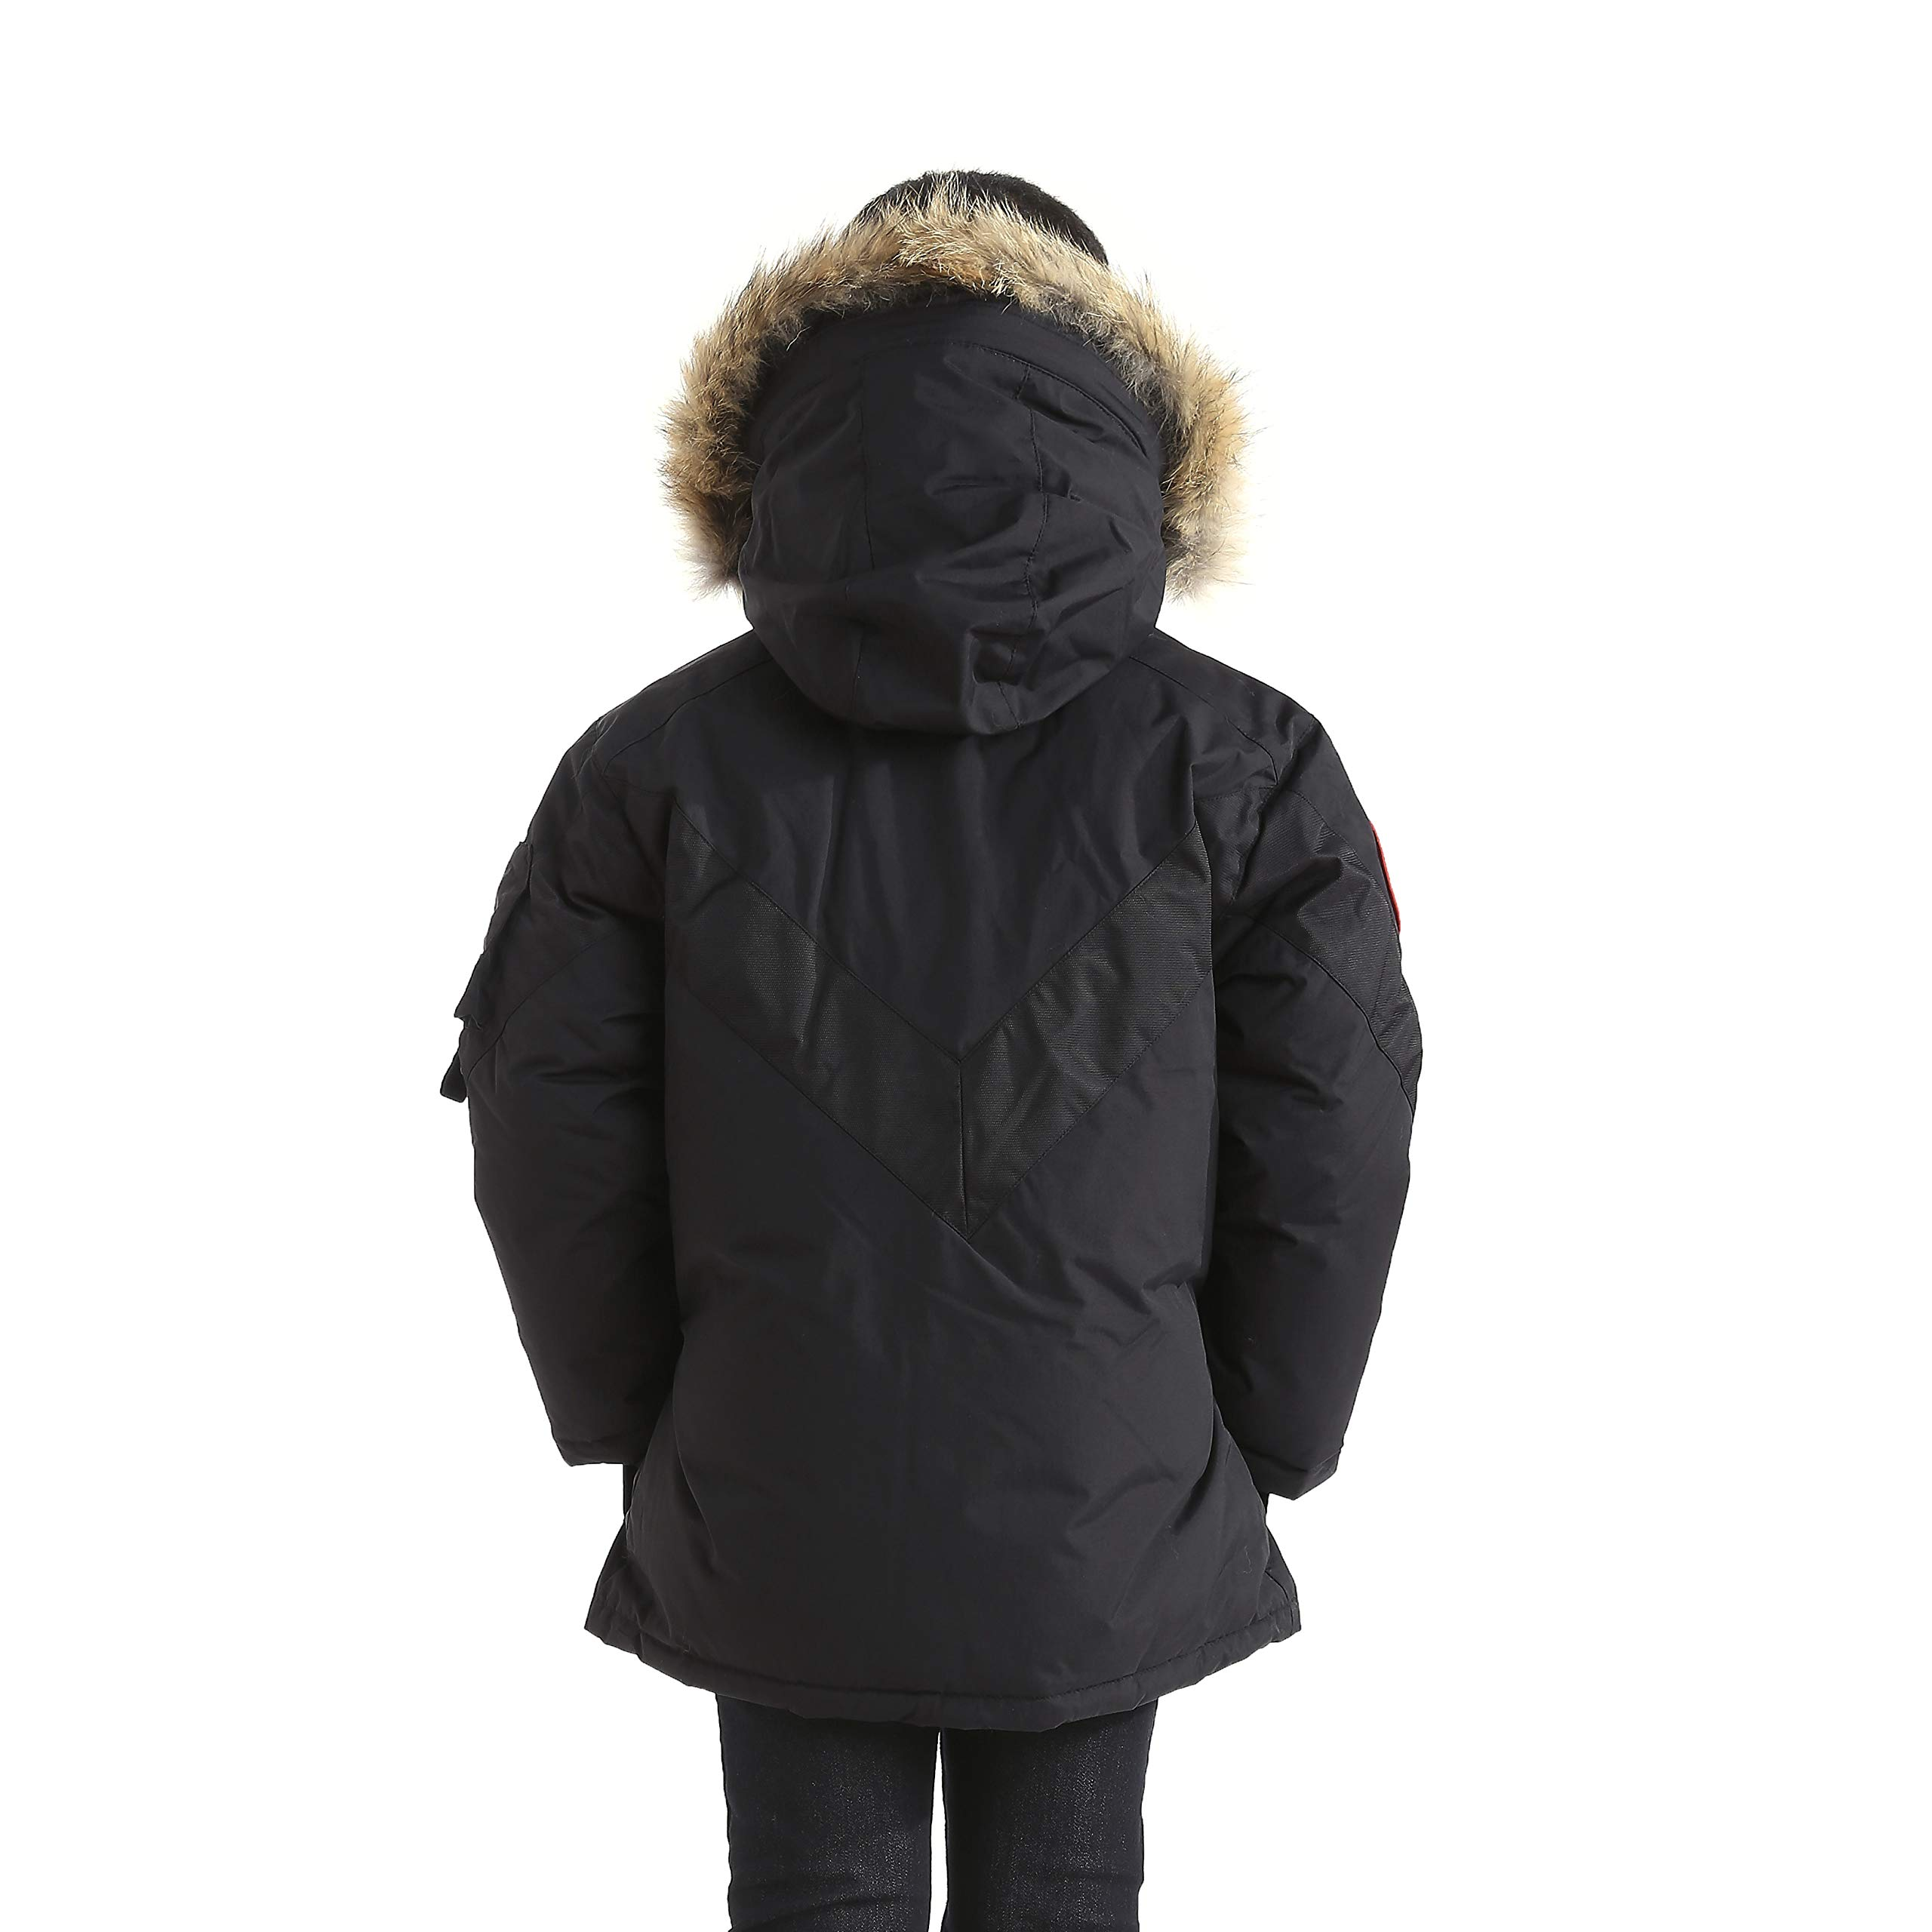 Triple F.A.T. Goose Hesselberg Boys Hooded Goose Down Arctic Parka with Real Coyote Fur (7, Black) by Triple F.A.T. Goose (Image #3)